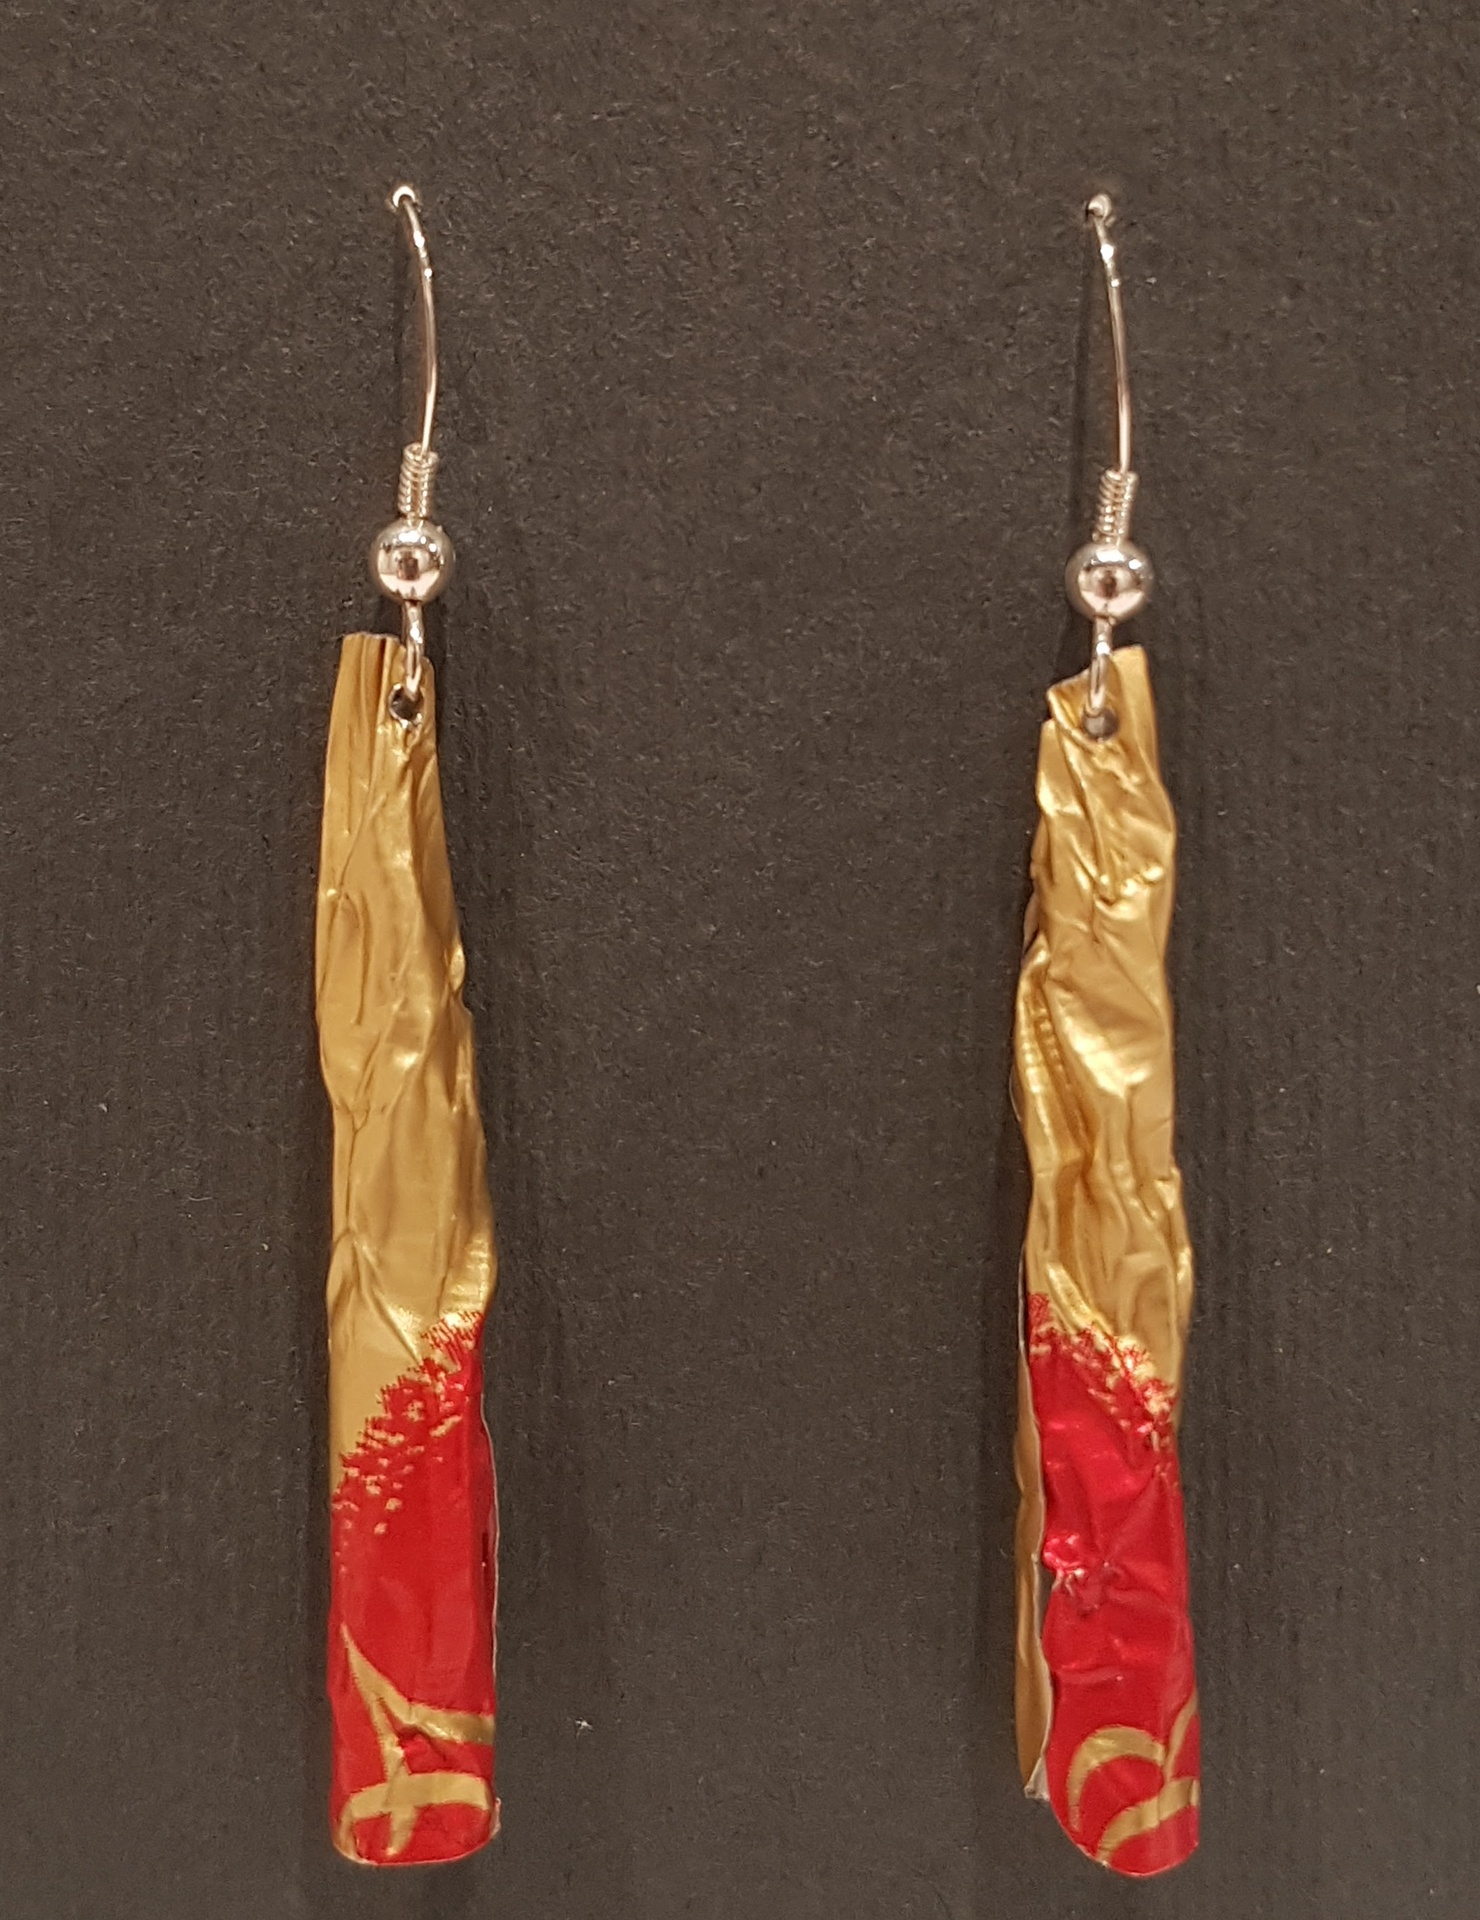 Red and Gold Anodized aluminium earrings